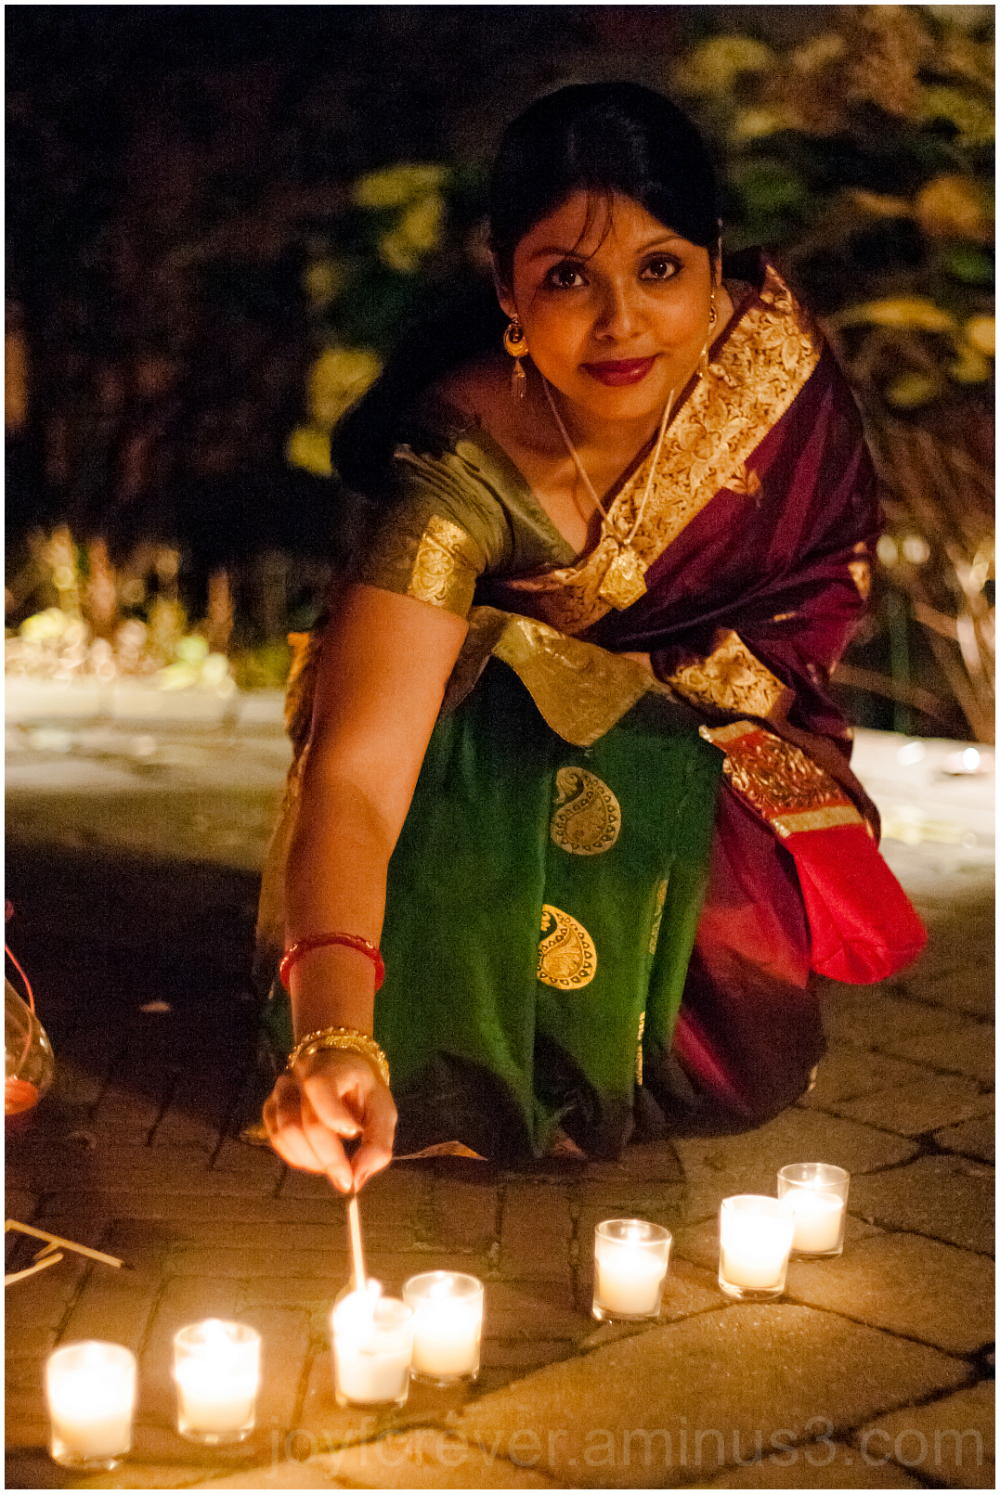 Woman festival Diwali Indian candle lamp wife sari